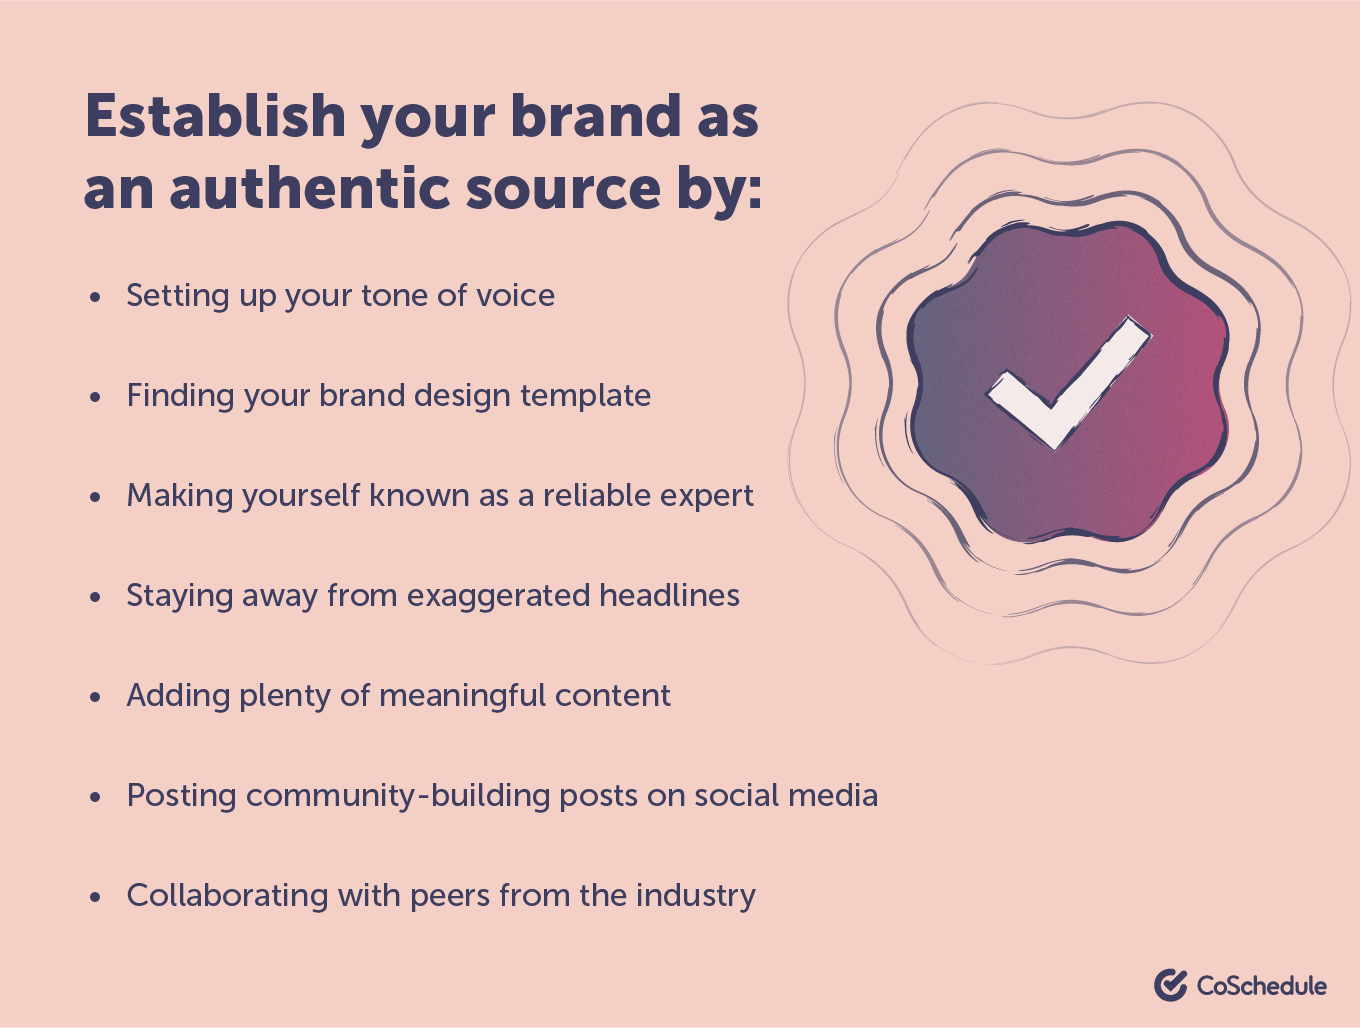 Establish your brand as a trusted source infographic